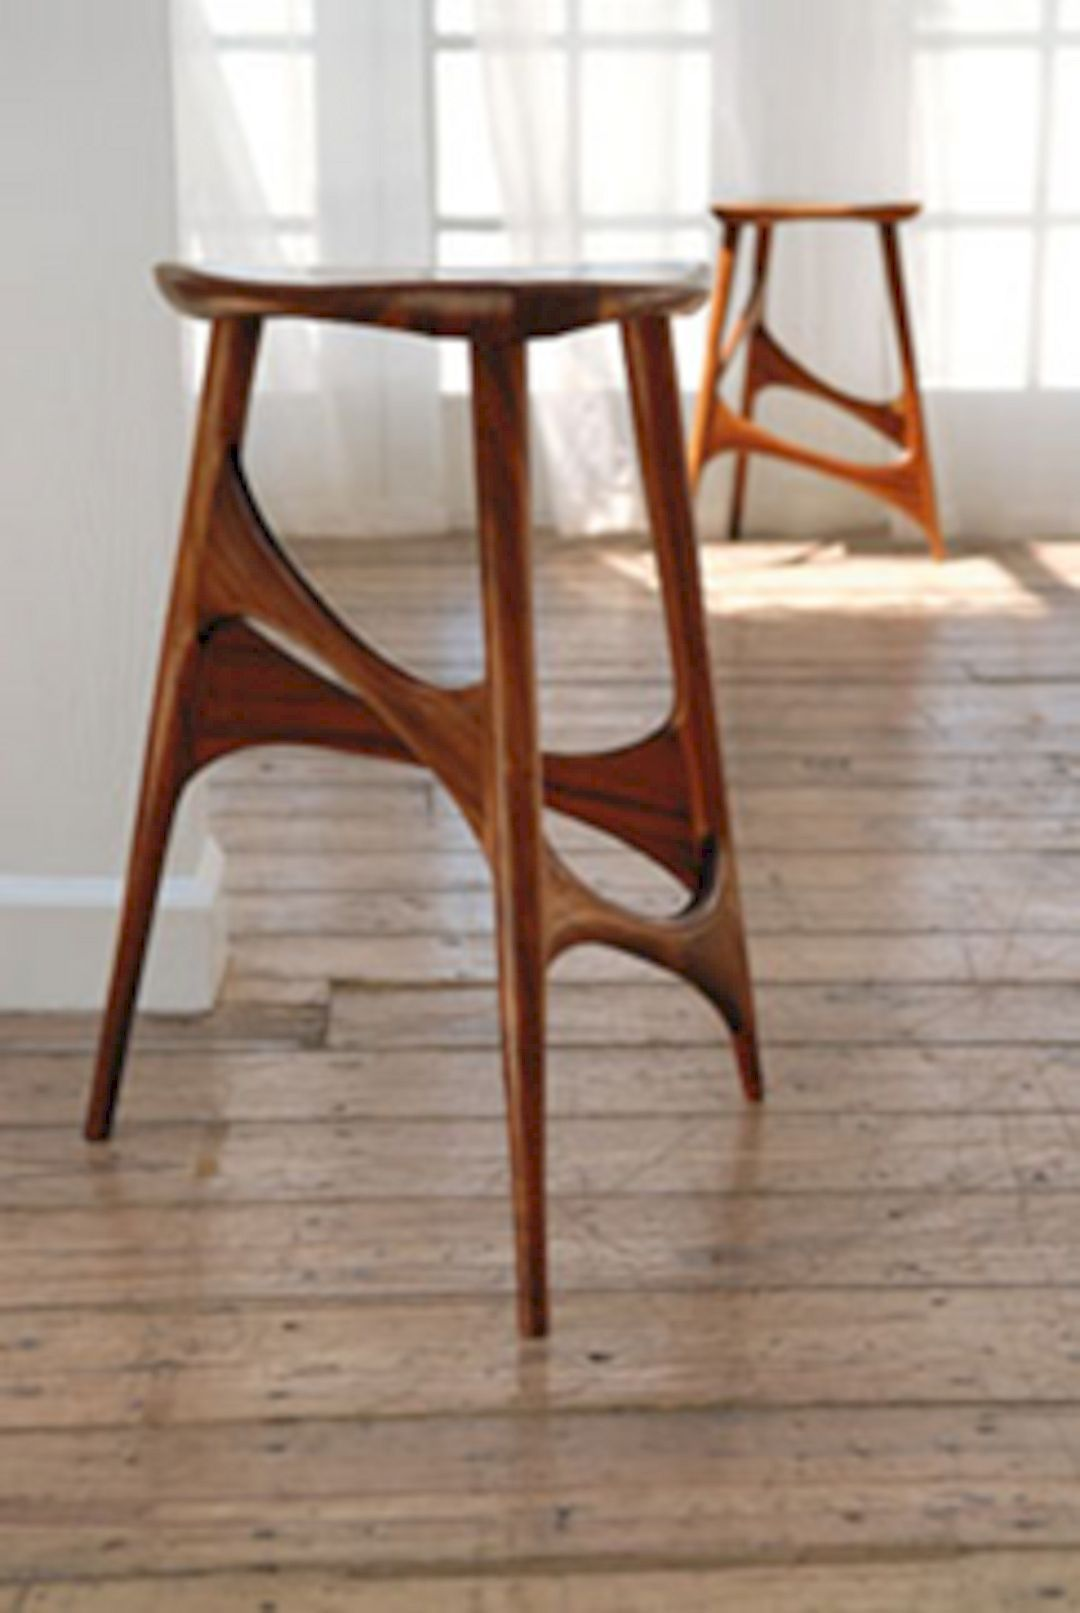 Danish Chair Plans 73 Awesome Danish Furniture Design Ideas Furniture